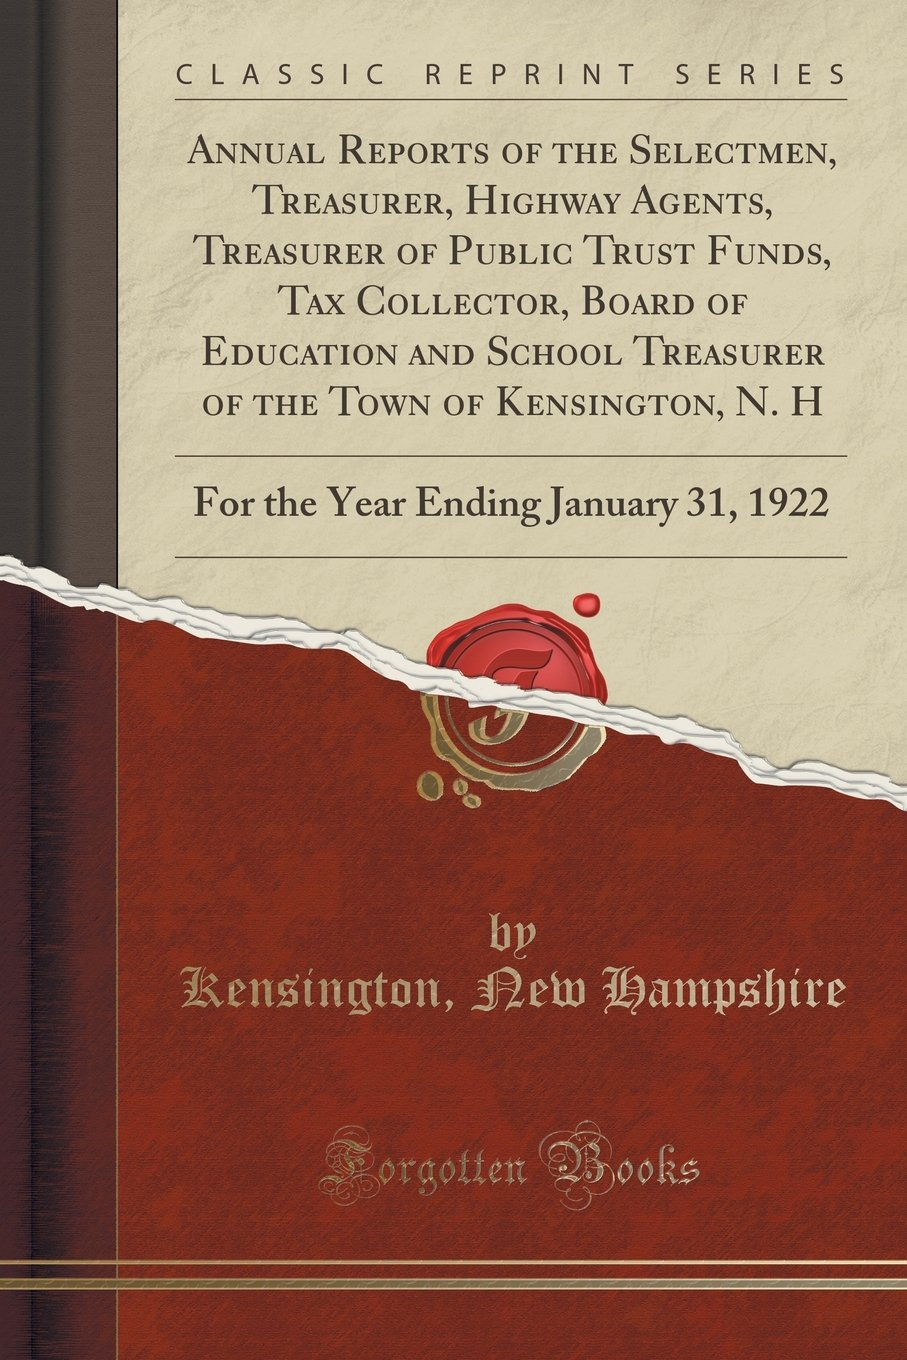 Read Online Annual Reports of the Selectmen, Treasurer, Highway Agents, Treasurer of Public Trust Funds, Tax Collector, Board of Education and School Treasurer of ... Ending January 31, 1922 (Classic Reprint) PDF